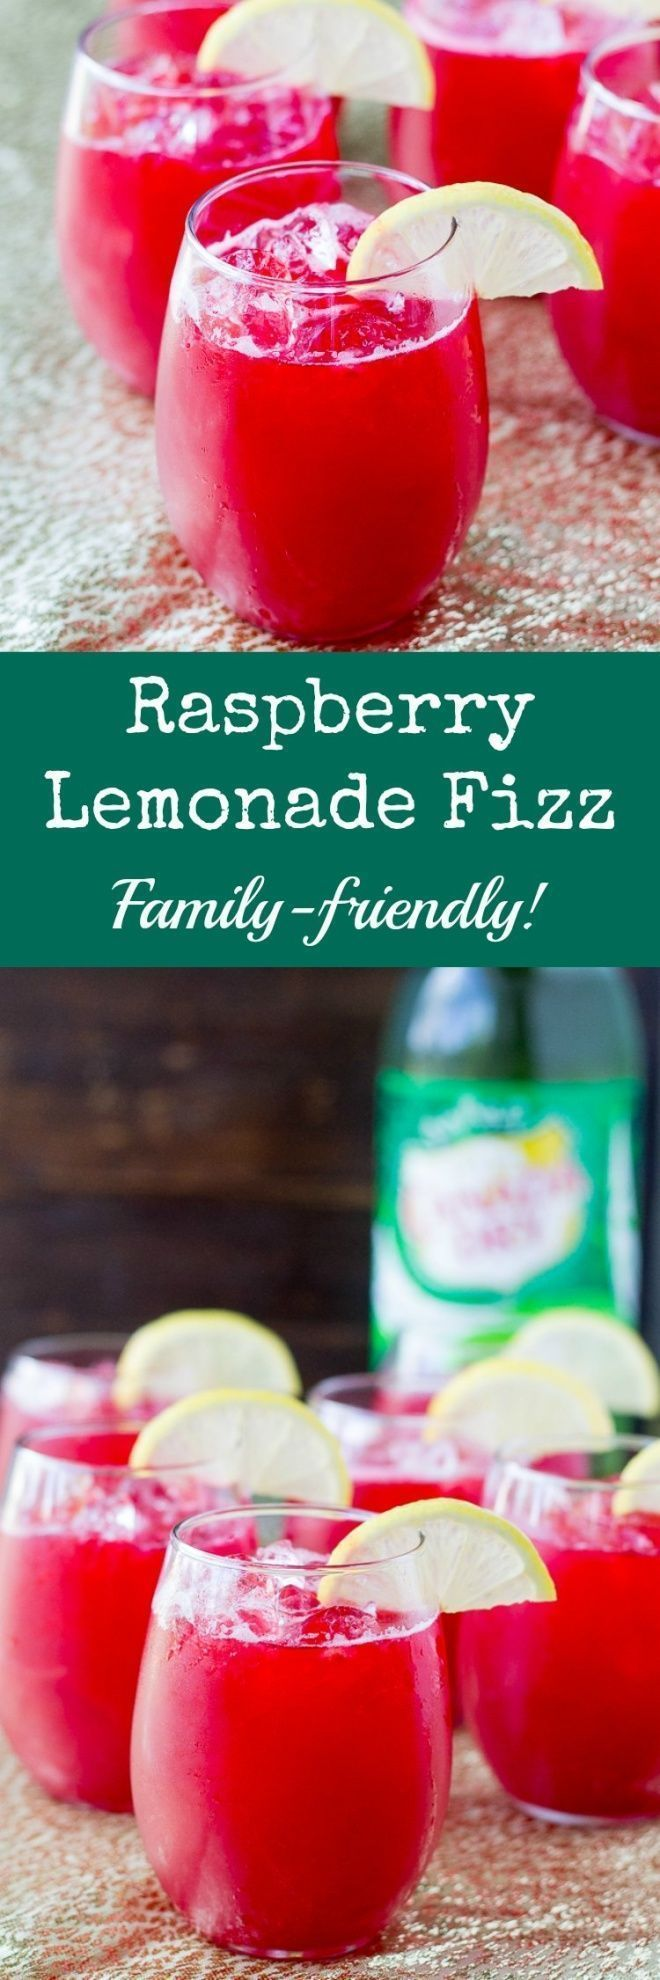 Raspberry Lemonade Fizz #flavoredlemonade Make Raspberry Lemonade Fizz the signature drink at your next party! It only takes 3 ingredients and everything can be made ahead. #raspberrylemonade Raspberry Lemonade Fizz #flavoredlemonade Make Raspberry Lemonade Fizz the signature drink at your next party! It only takes 3 ingredients and everything can be made ahead. #raspberrylemonade Raspberry Lemonade Fizz #flavoredlemonade Make Raspberry Lemonade Fizz the signature drink at your next party! It on #raspberrylemonade